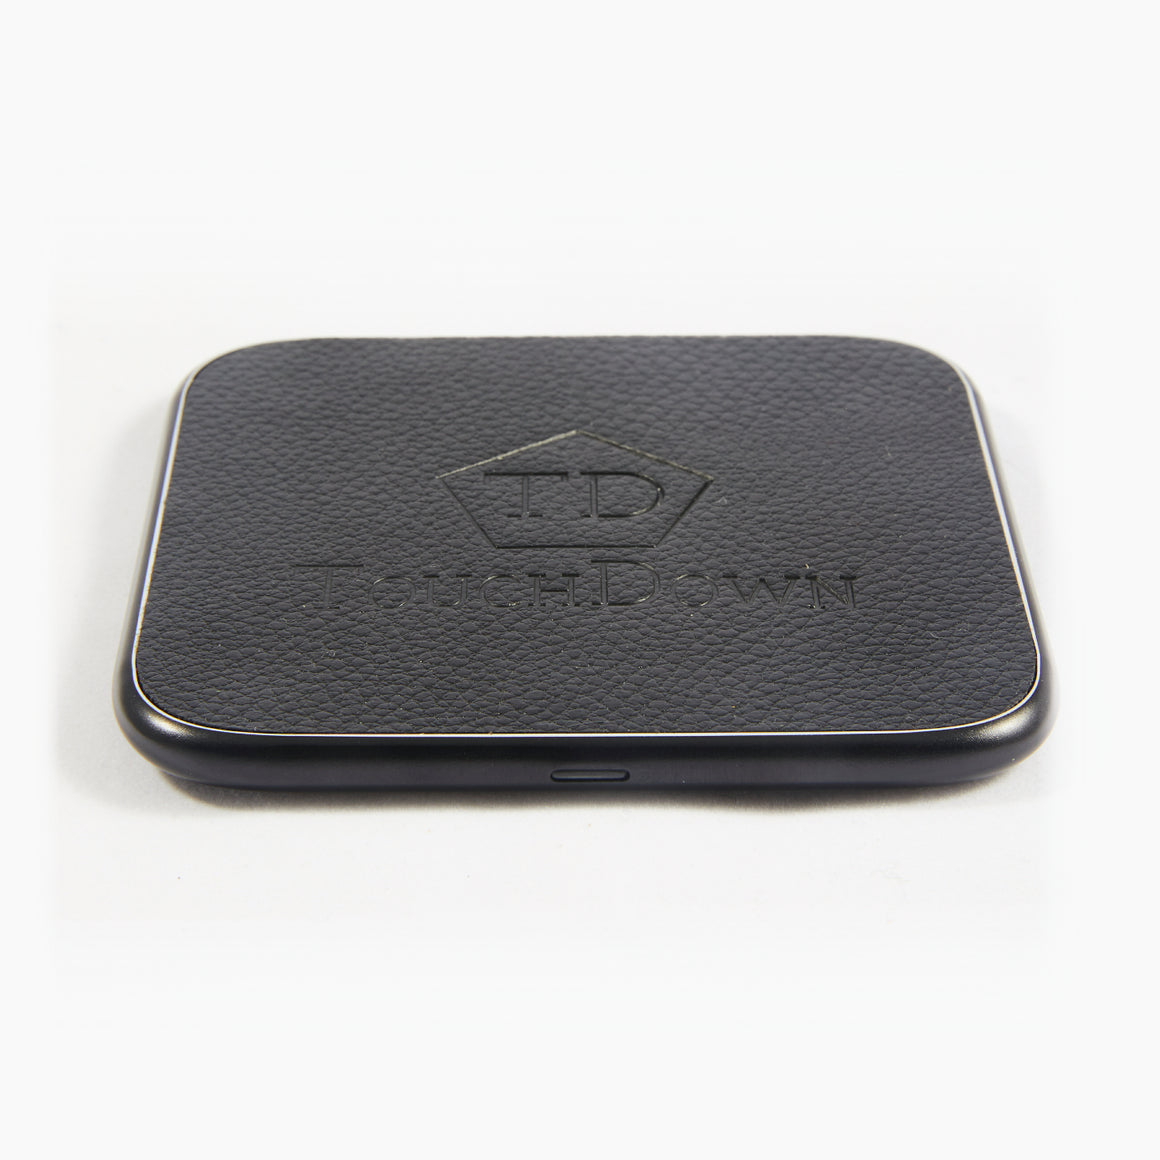 Leather Charging Pad - Business Edition - Silver - TouchDown Charging